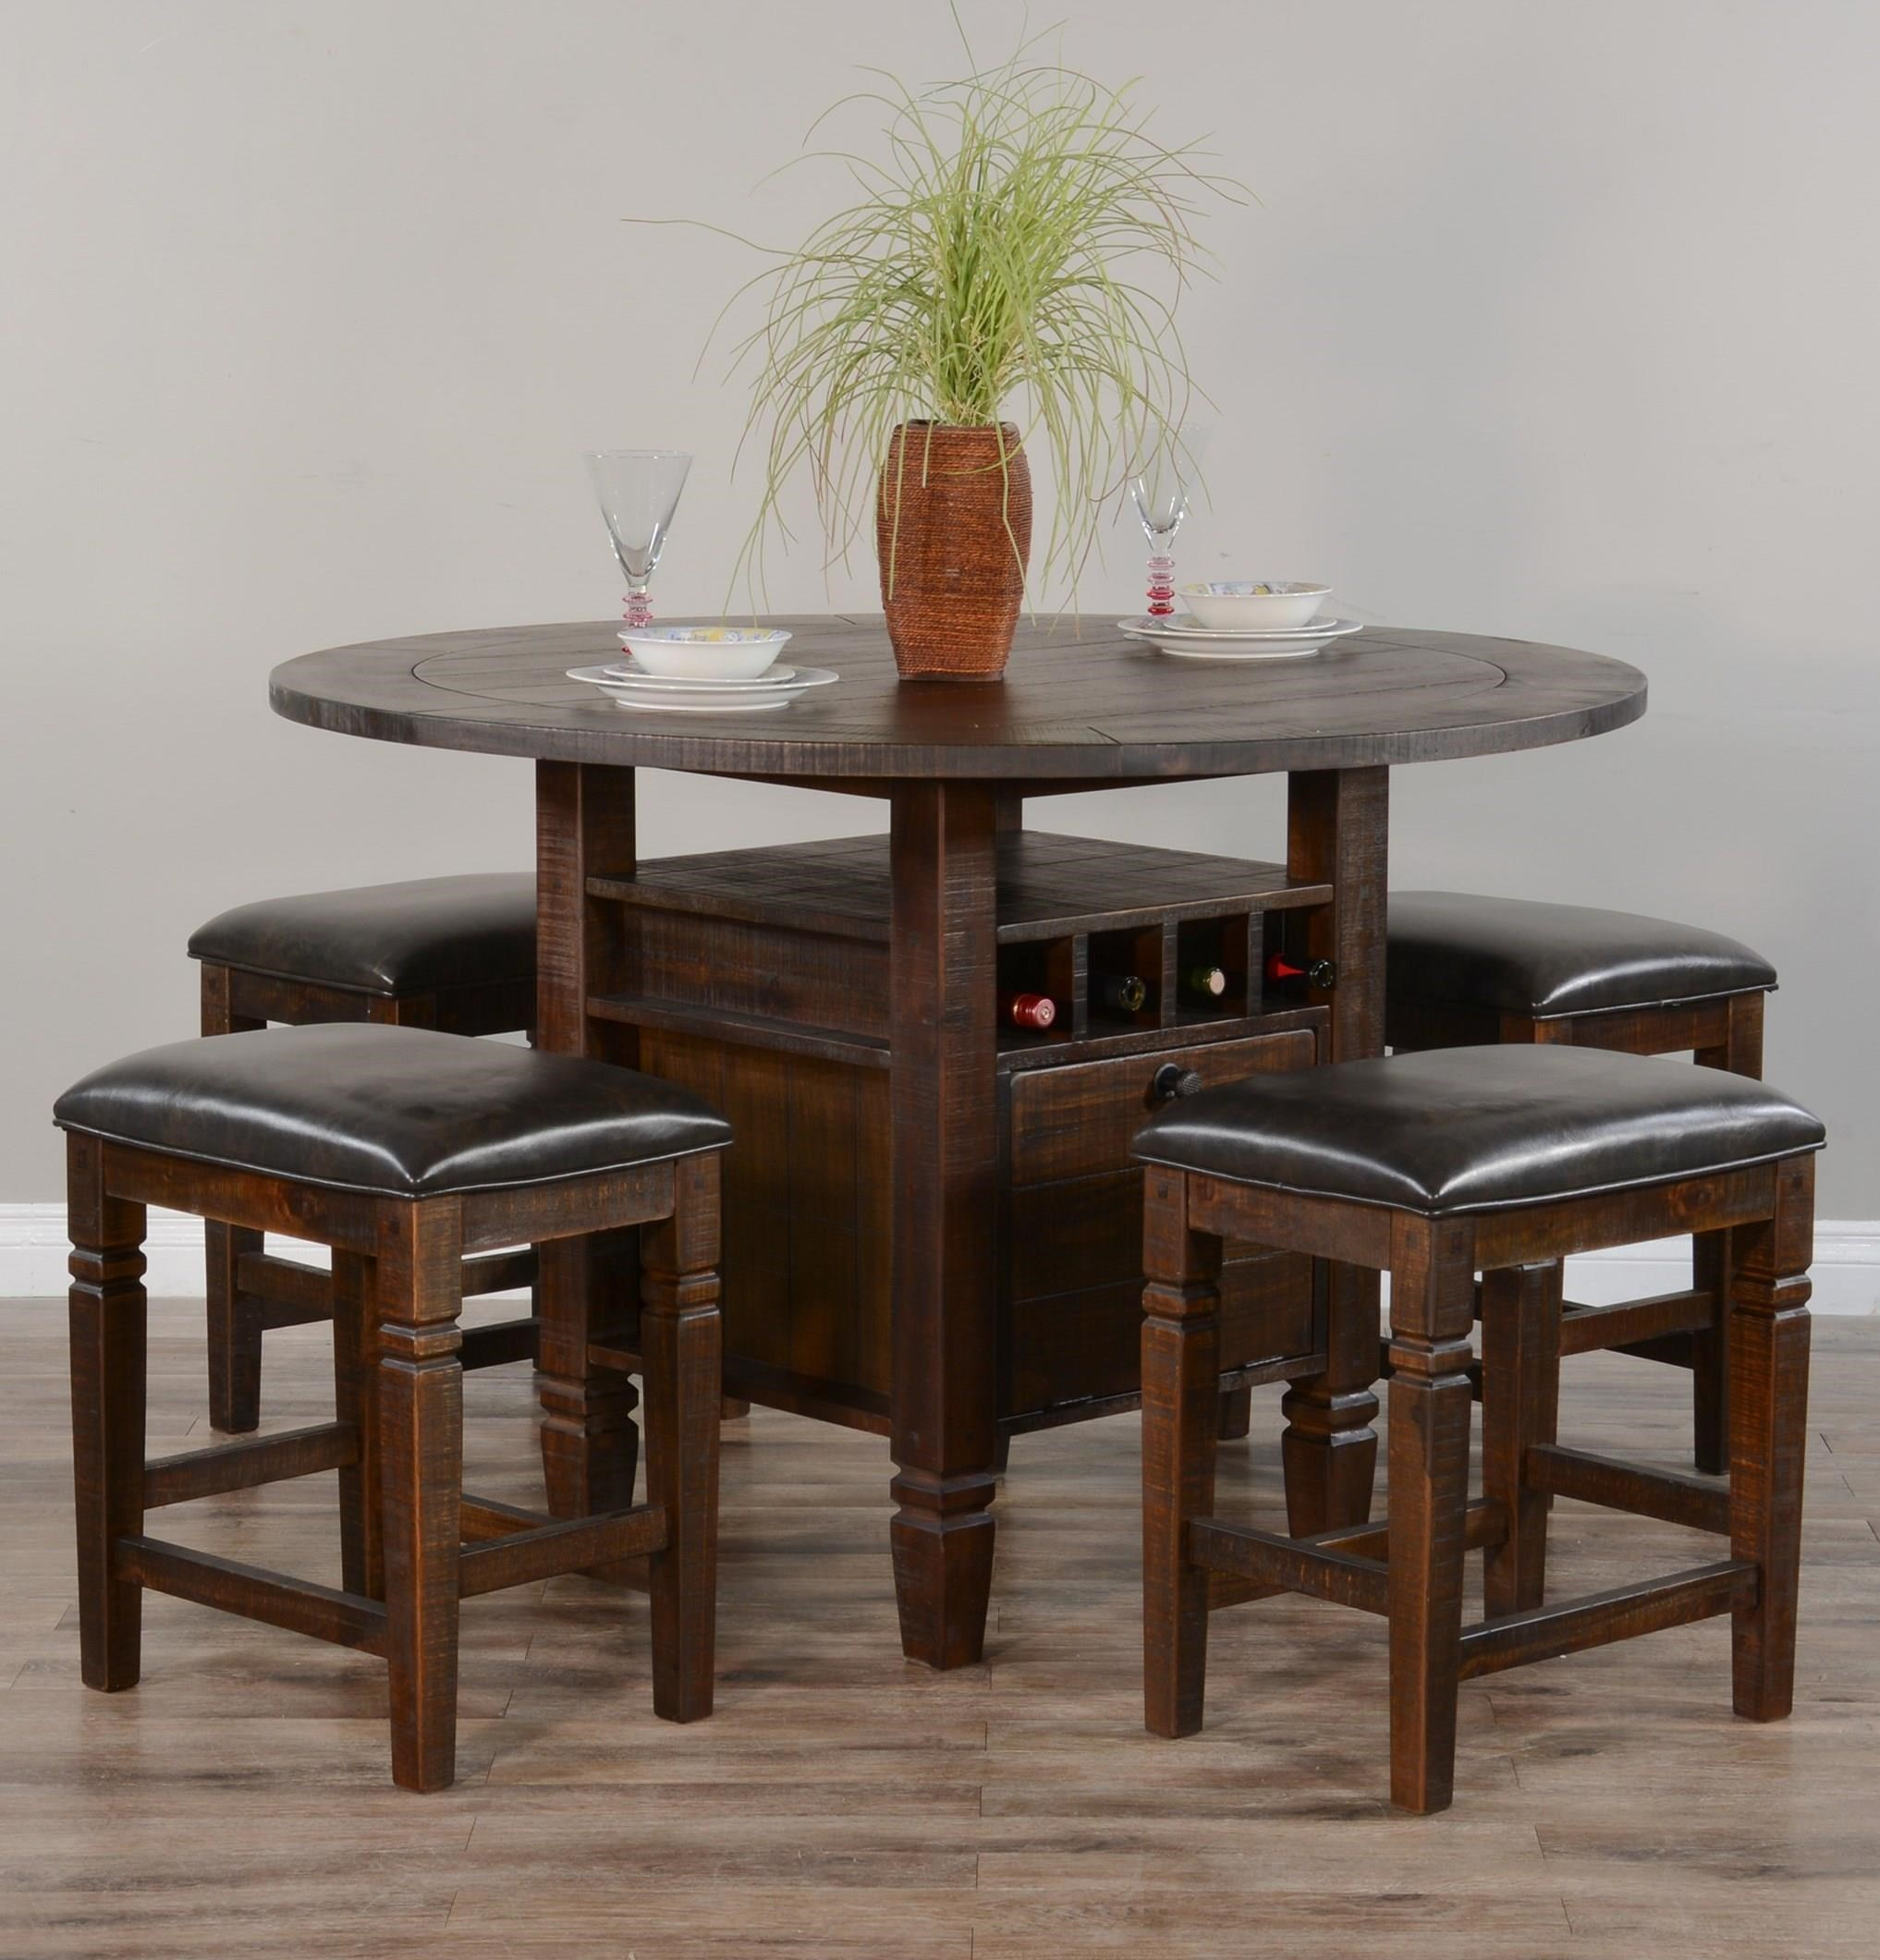 Homestead 2 5-Piece Counter Table Set by Sunny Designs at Sparks HomeStore